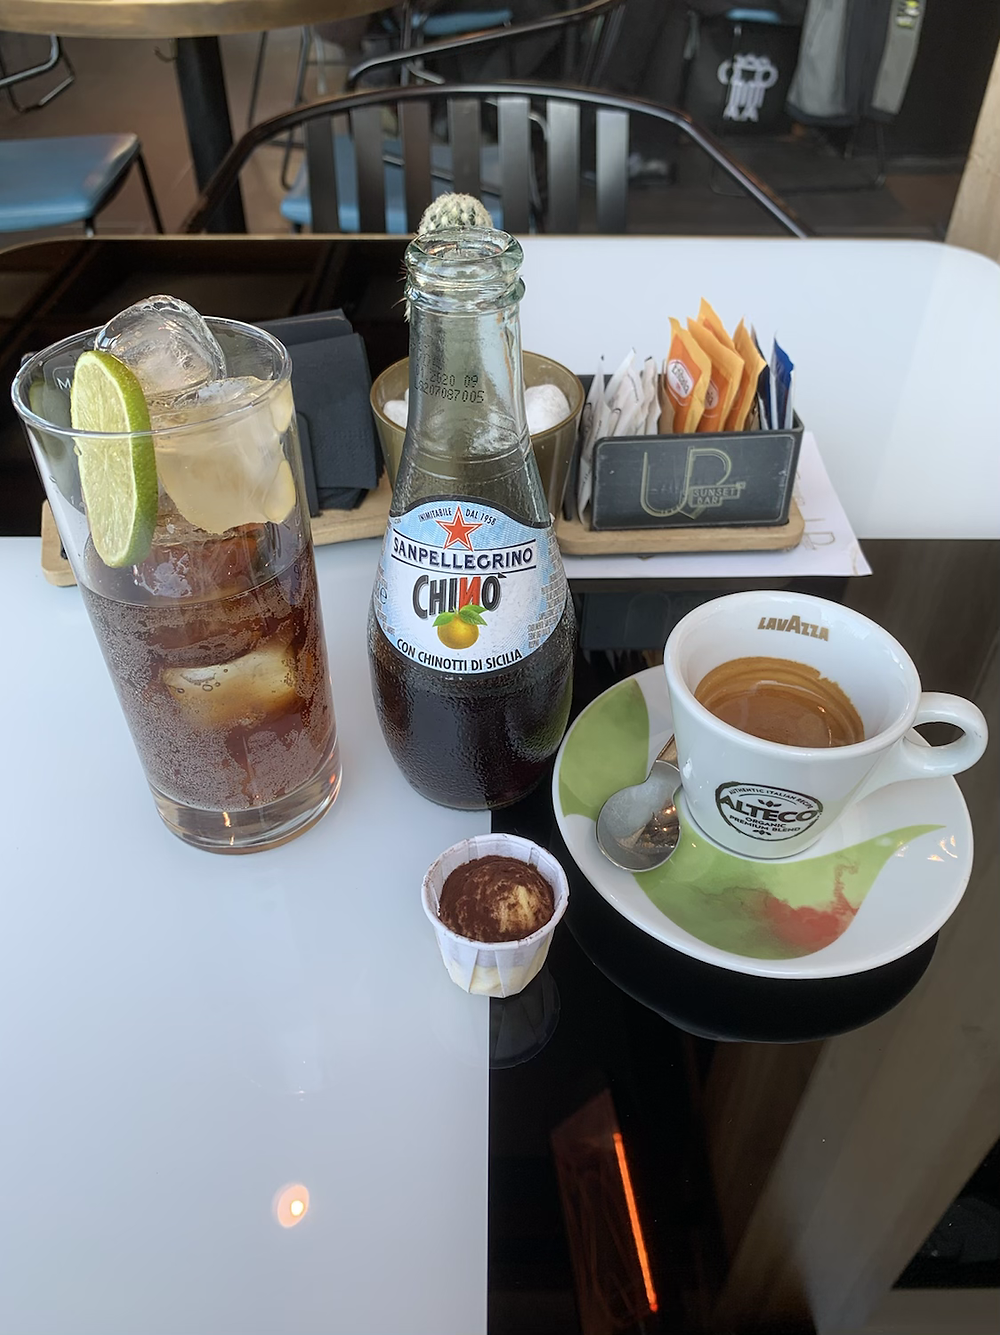 When you order chinotto in Rome, they will ask you if you want it with ice, slice of lemon or orange. I prefer it with ice and a slice of orange, it underlines the same family fruit in the drink.